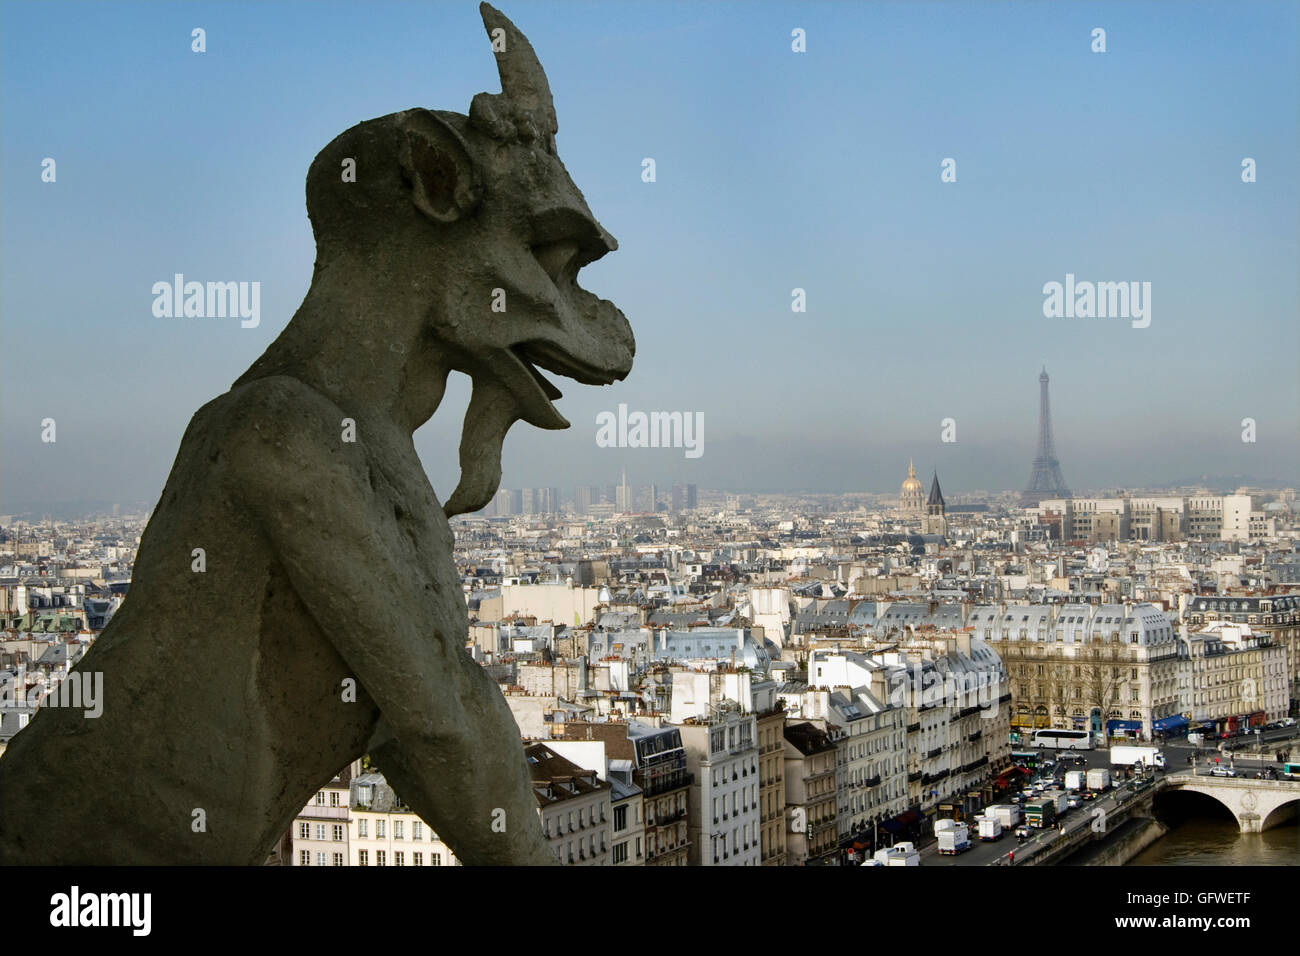 A photograph of the Galerie des Chimeres on the top of the Notre Dame  cathedral in Paris Stock Photo